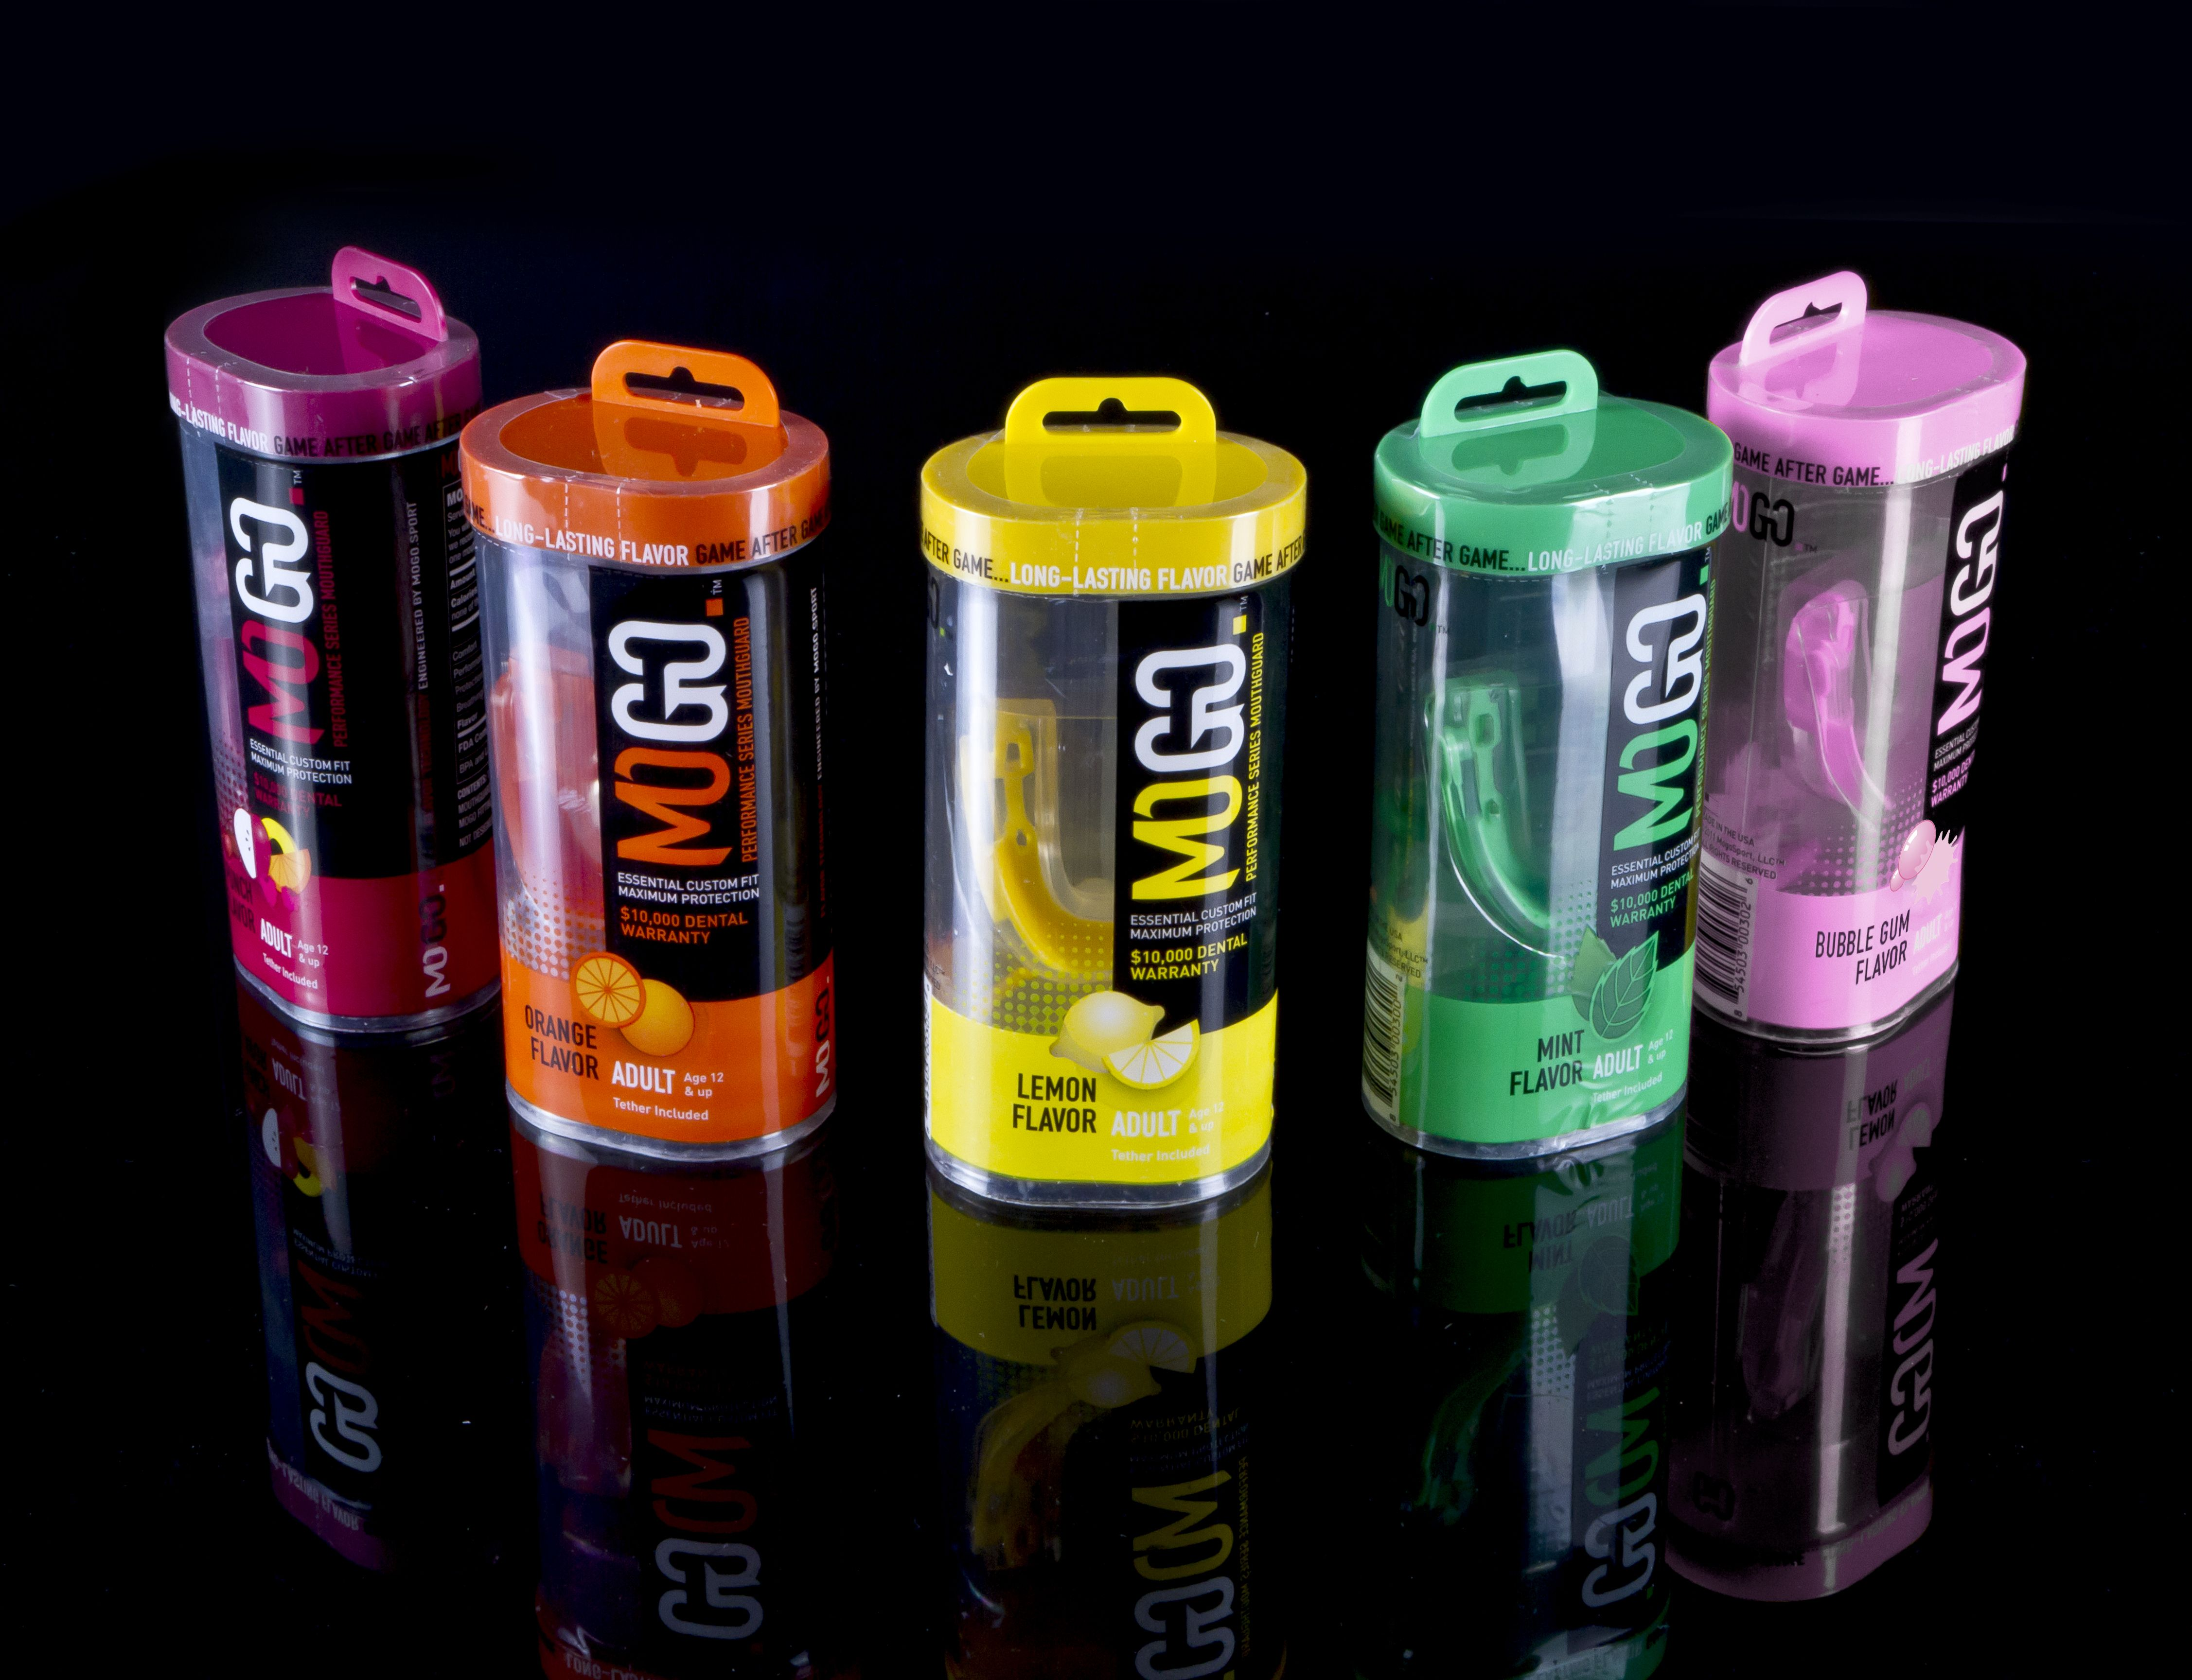 MoGo Sport  the Flavored Mouthguard s Retail Packaging  71dd7503c8897